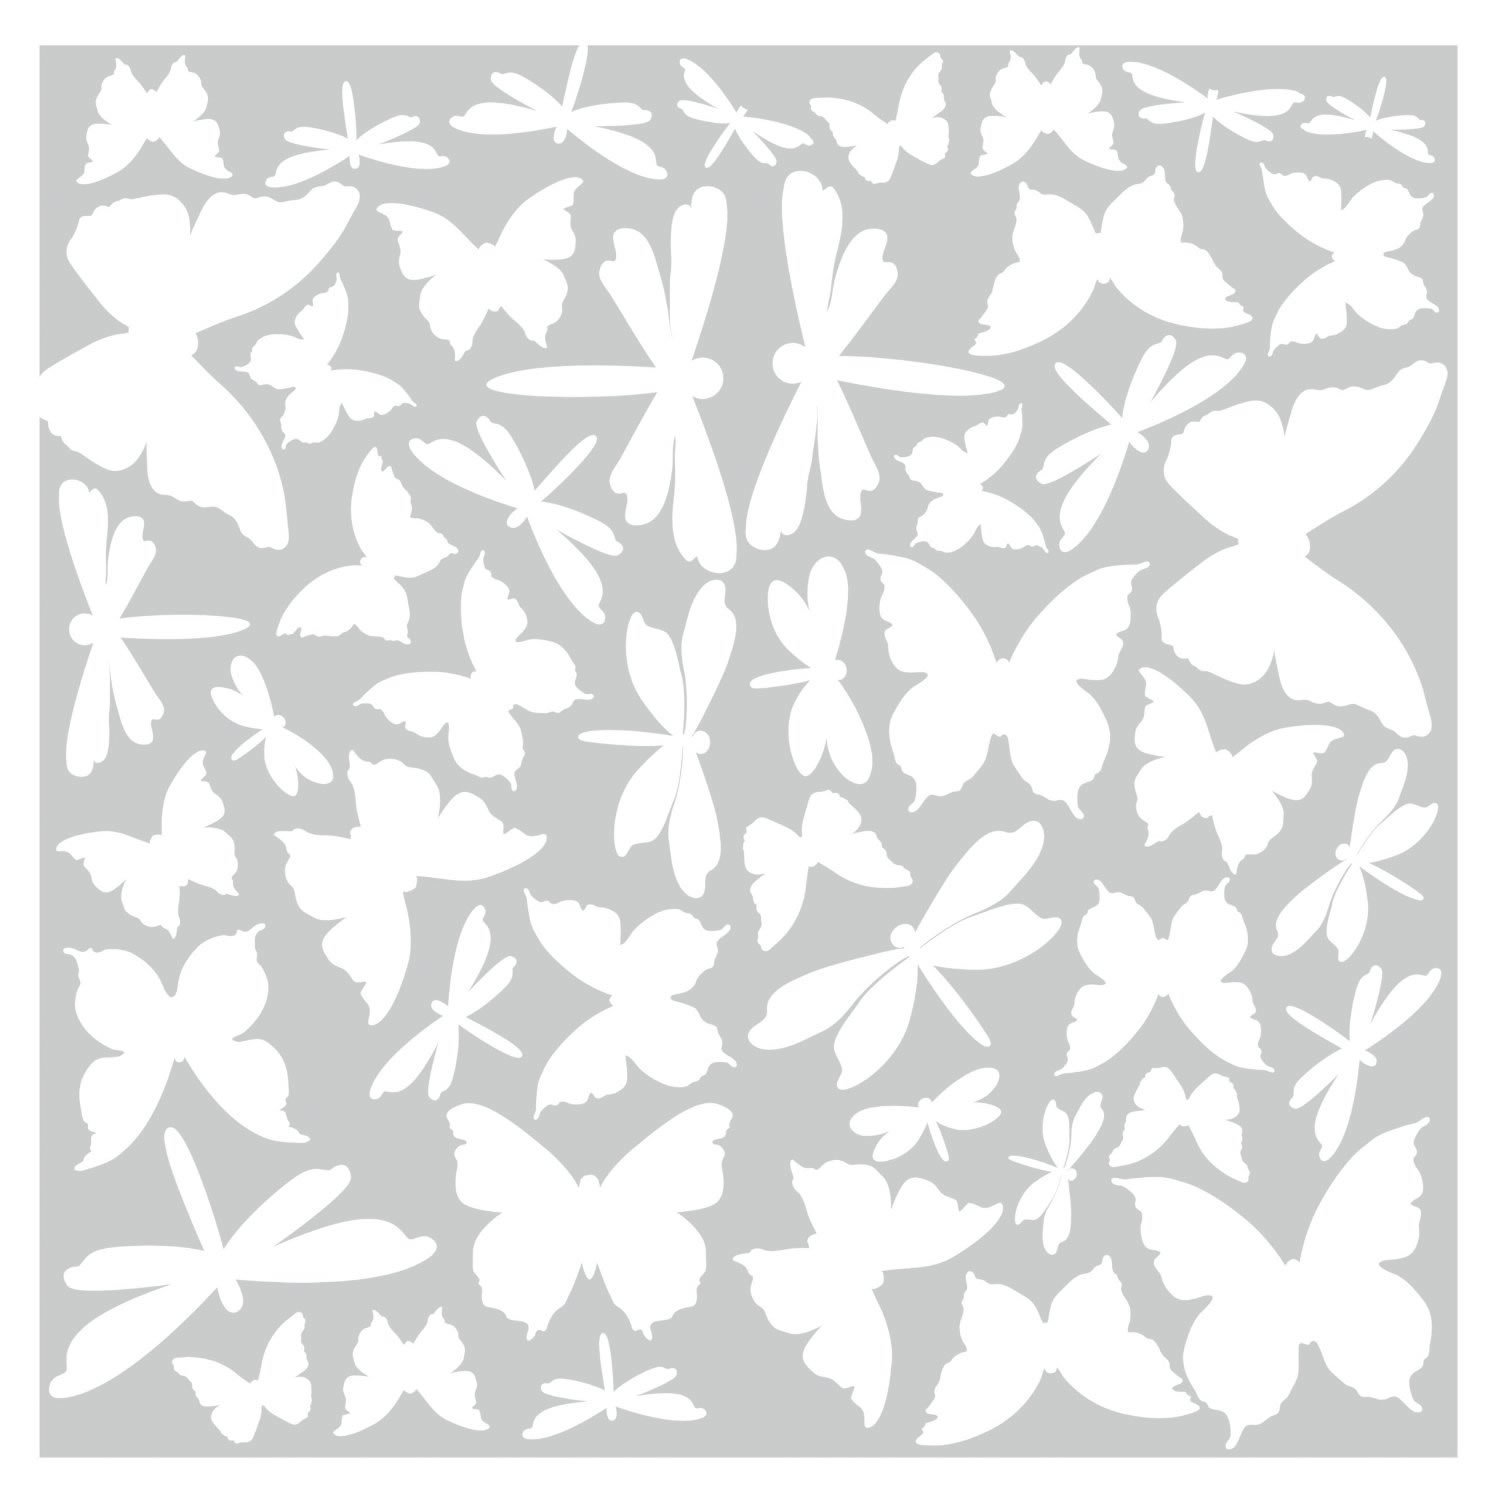 Amazon.com: ROOMMATES RMK1706SCS Butterfly And Dragonfly Glow In The Dark  Wall Decals: Home Improvement